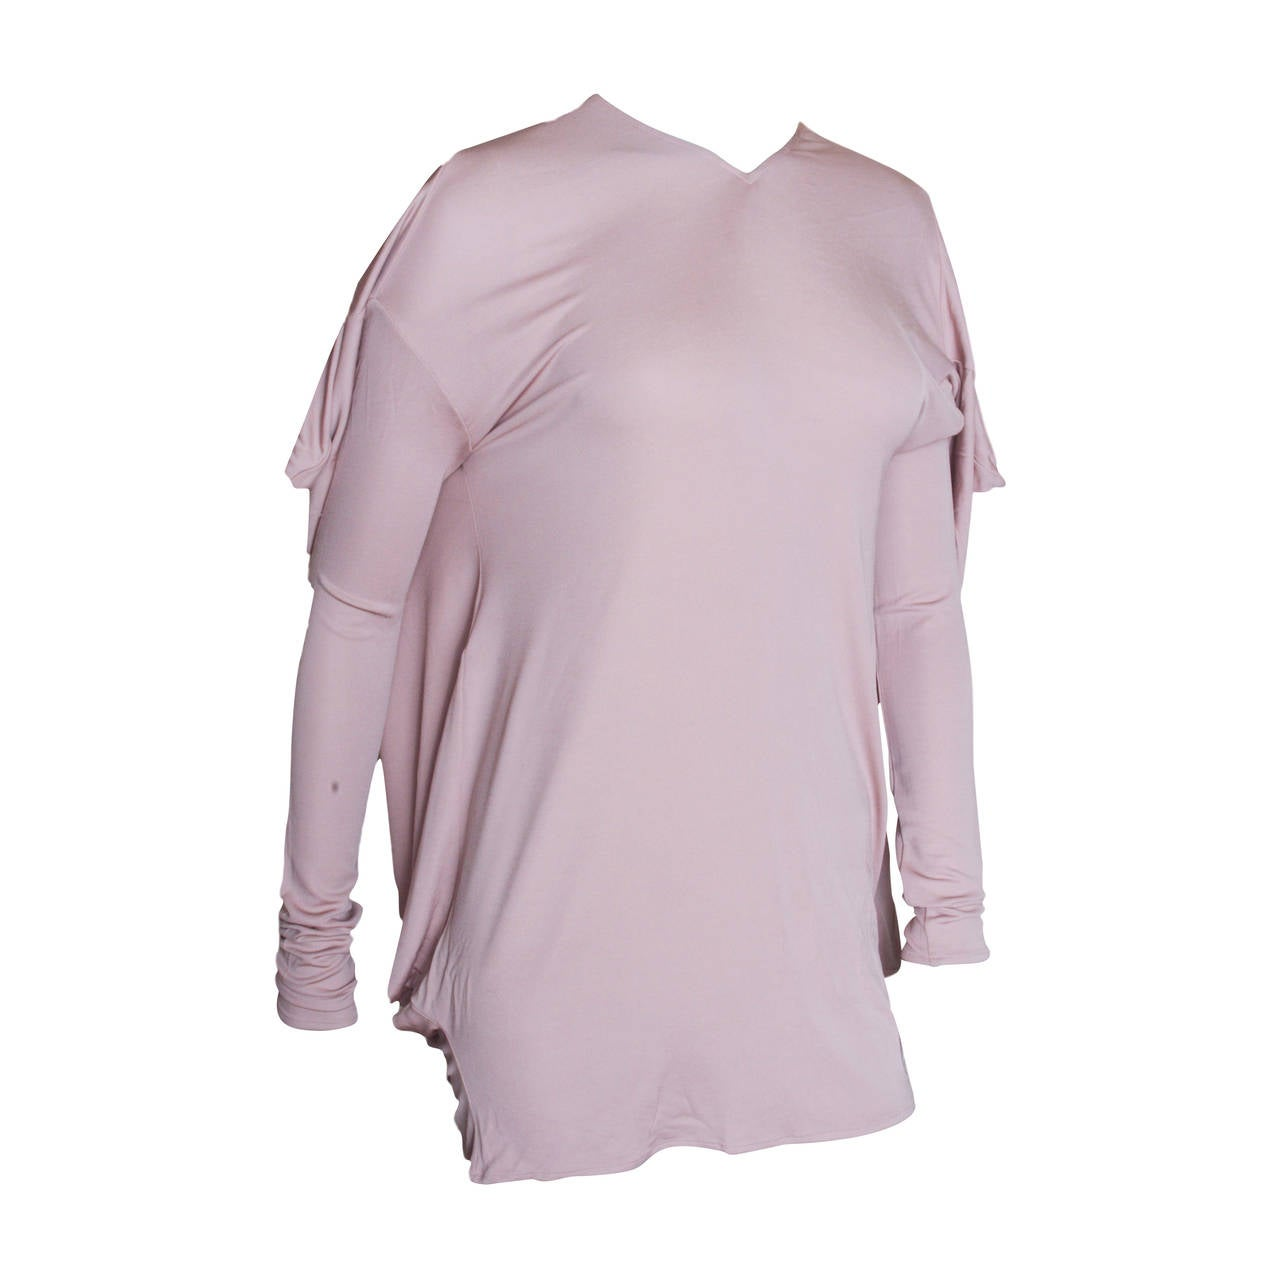 Maison Martin Margiela Draped Jersey Top 1